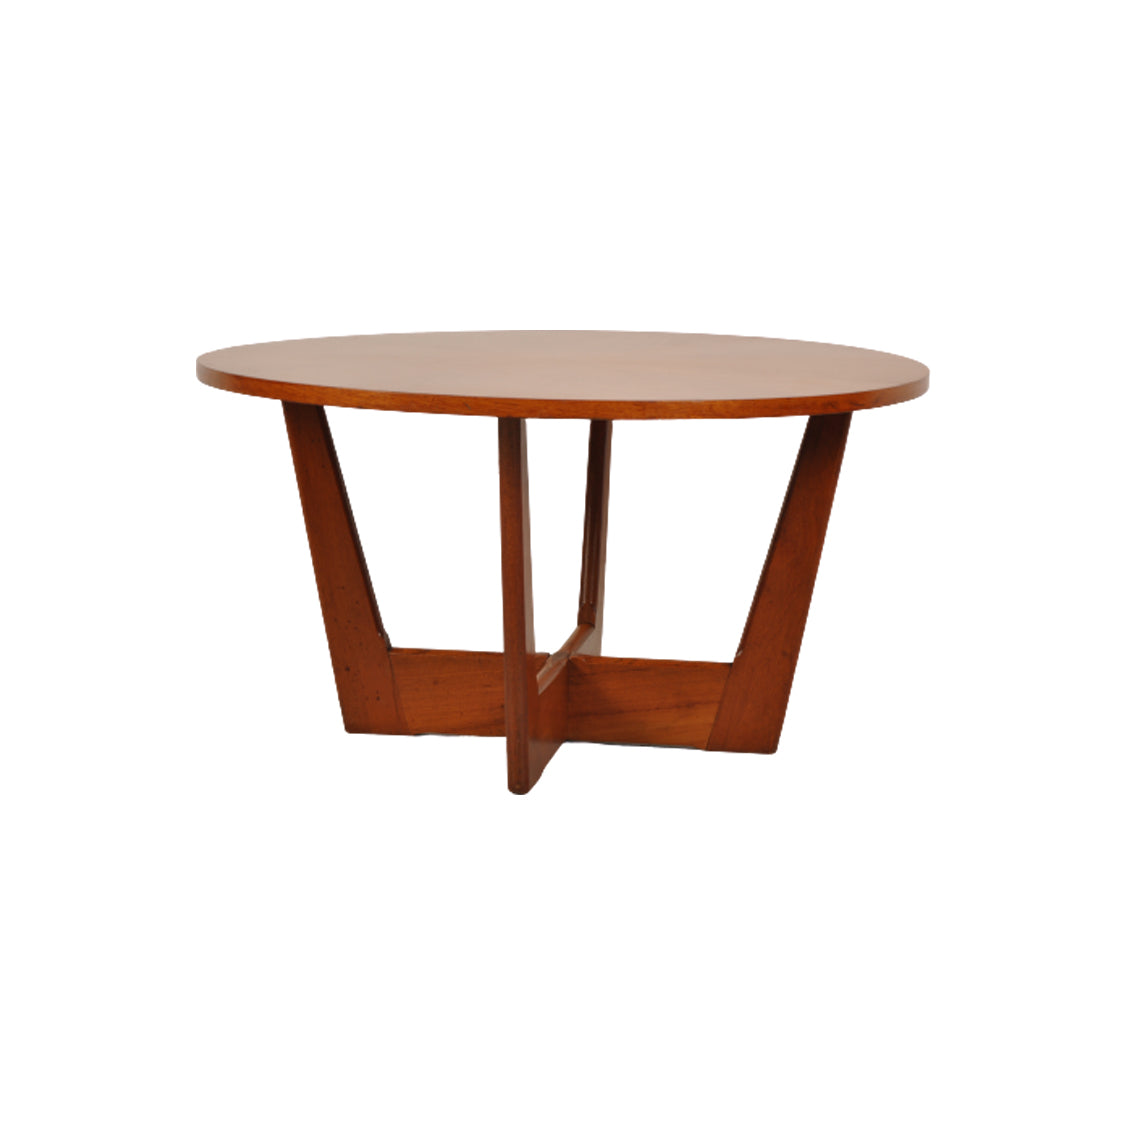 Teak Starburst Low Coffee Table by Soren Holger Georg Jensen for Kubus